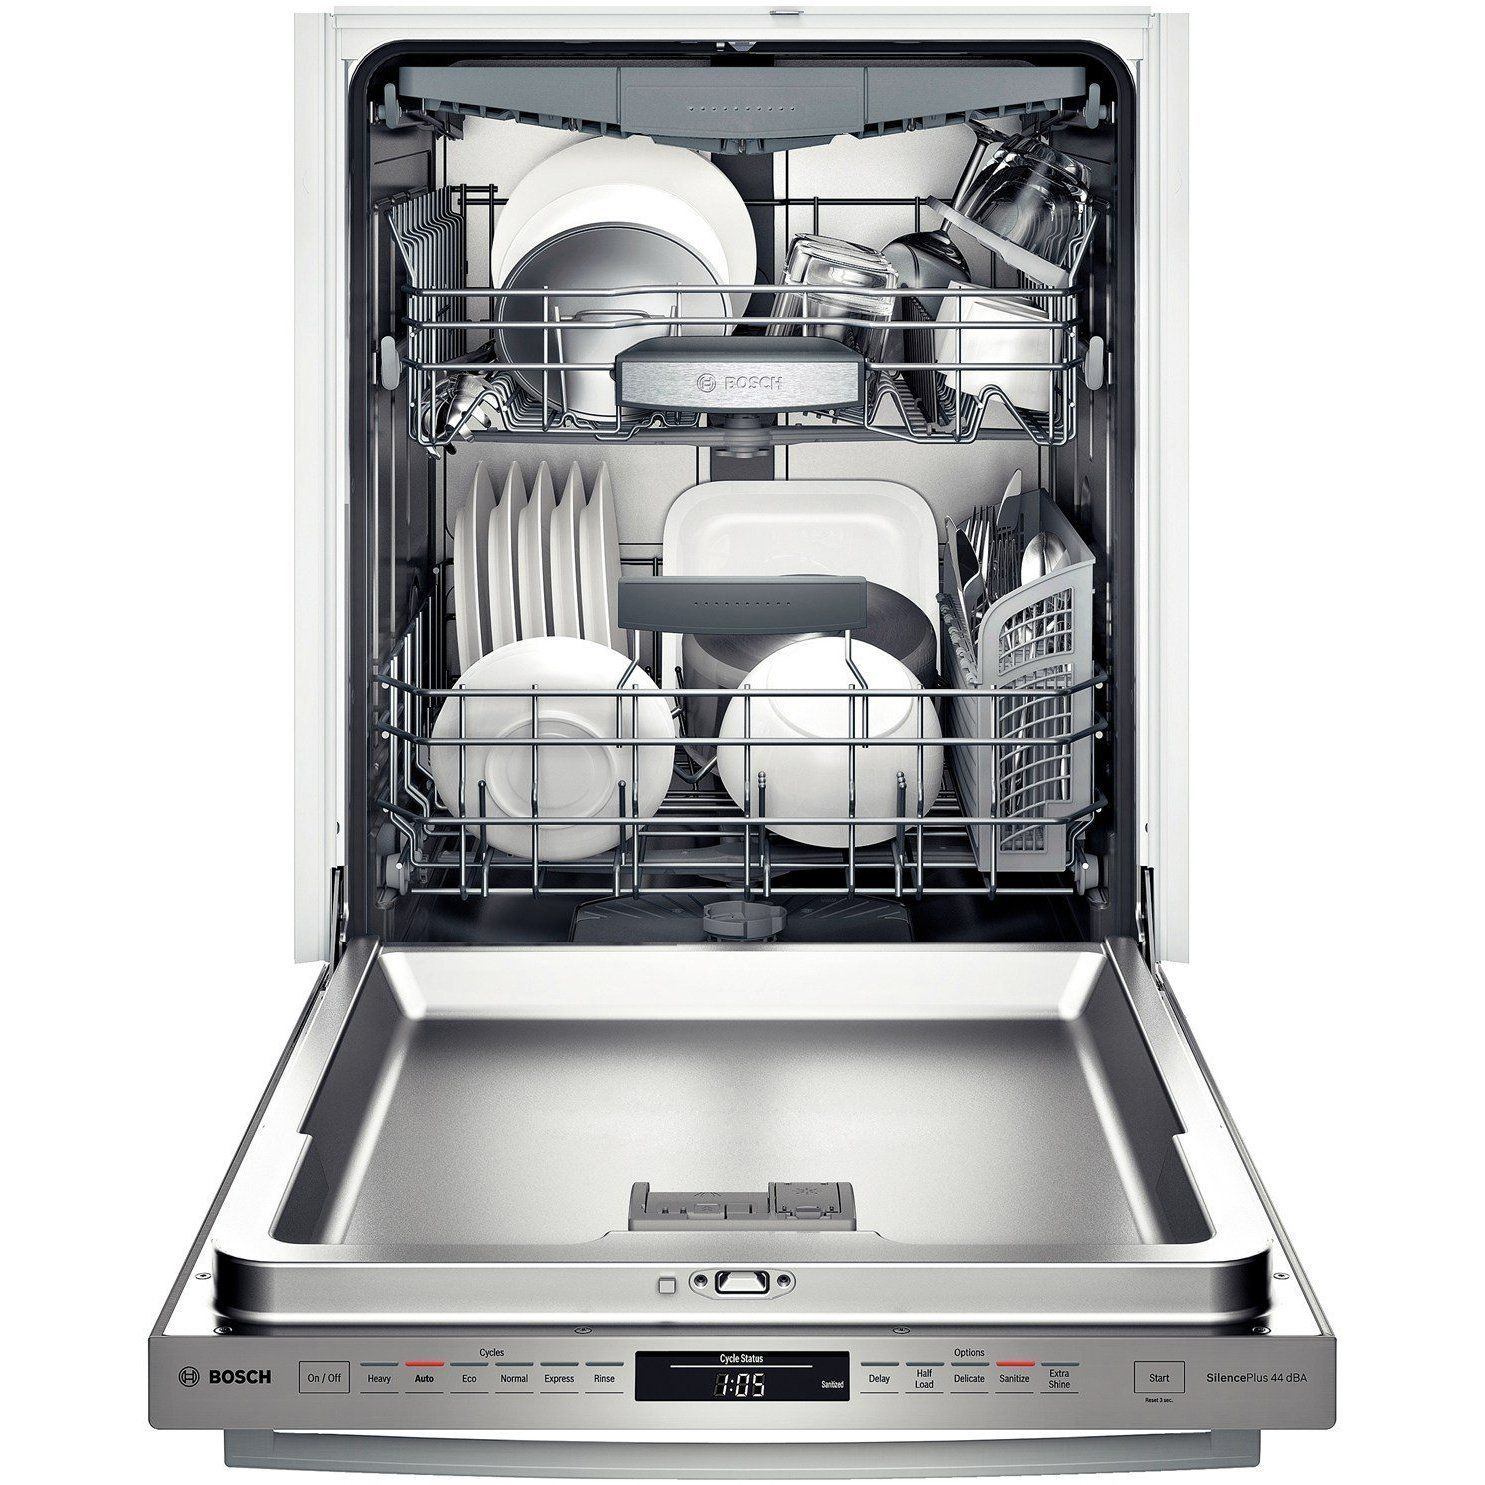 Bosch 800 Series Read The Full Review And Add Yours Built In Dishwasher Integrated Dishwasher Bosch Dishwashers